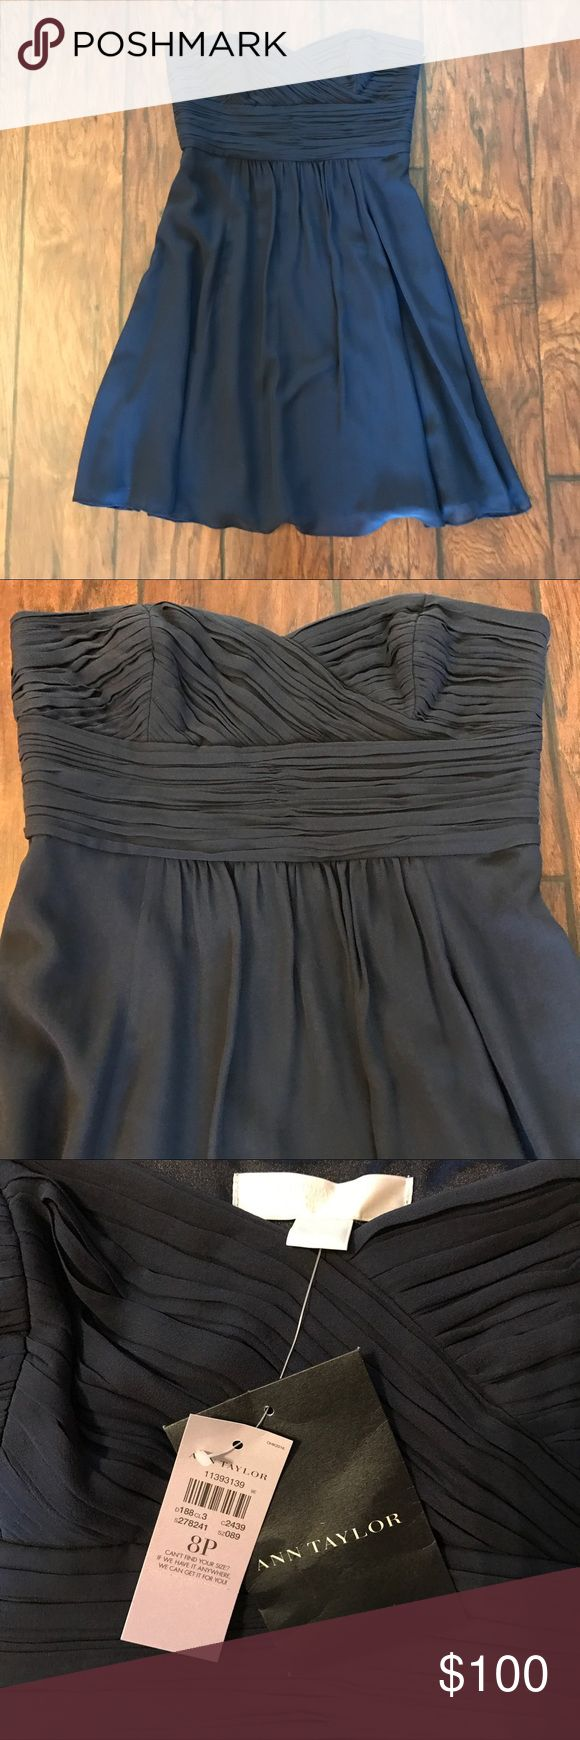 NEW Ann Taylor Navy Blue Silk Dress Size 8 Petite Absolutely gorgeous Silk Strapless Dress! Perfect for weddings and semi formal events! New with tags! Make an offer! Ann Taylor Dresses Strapless